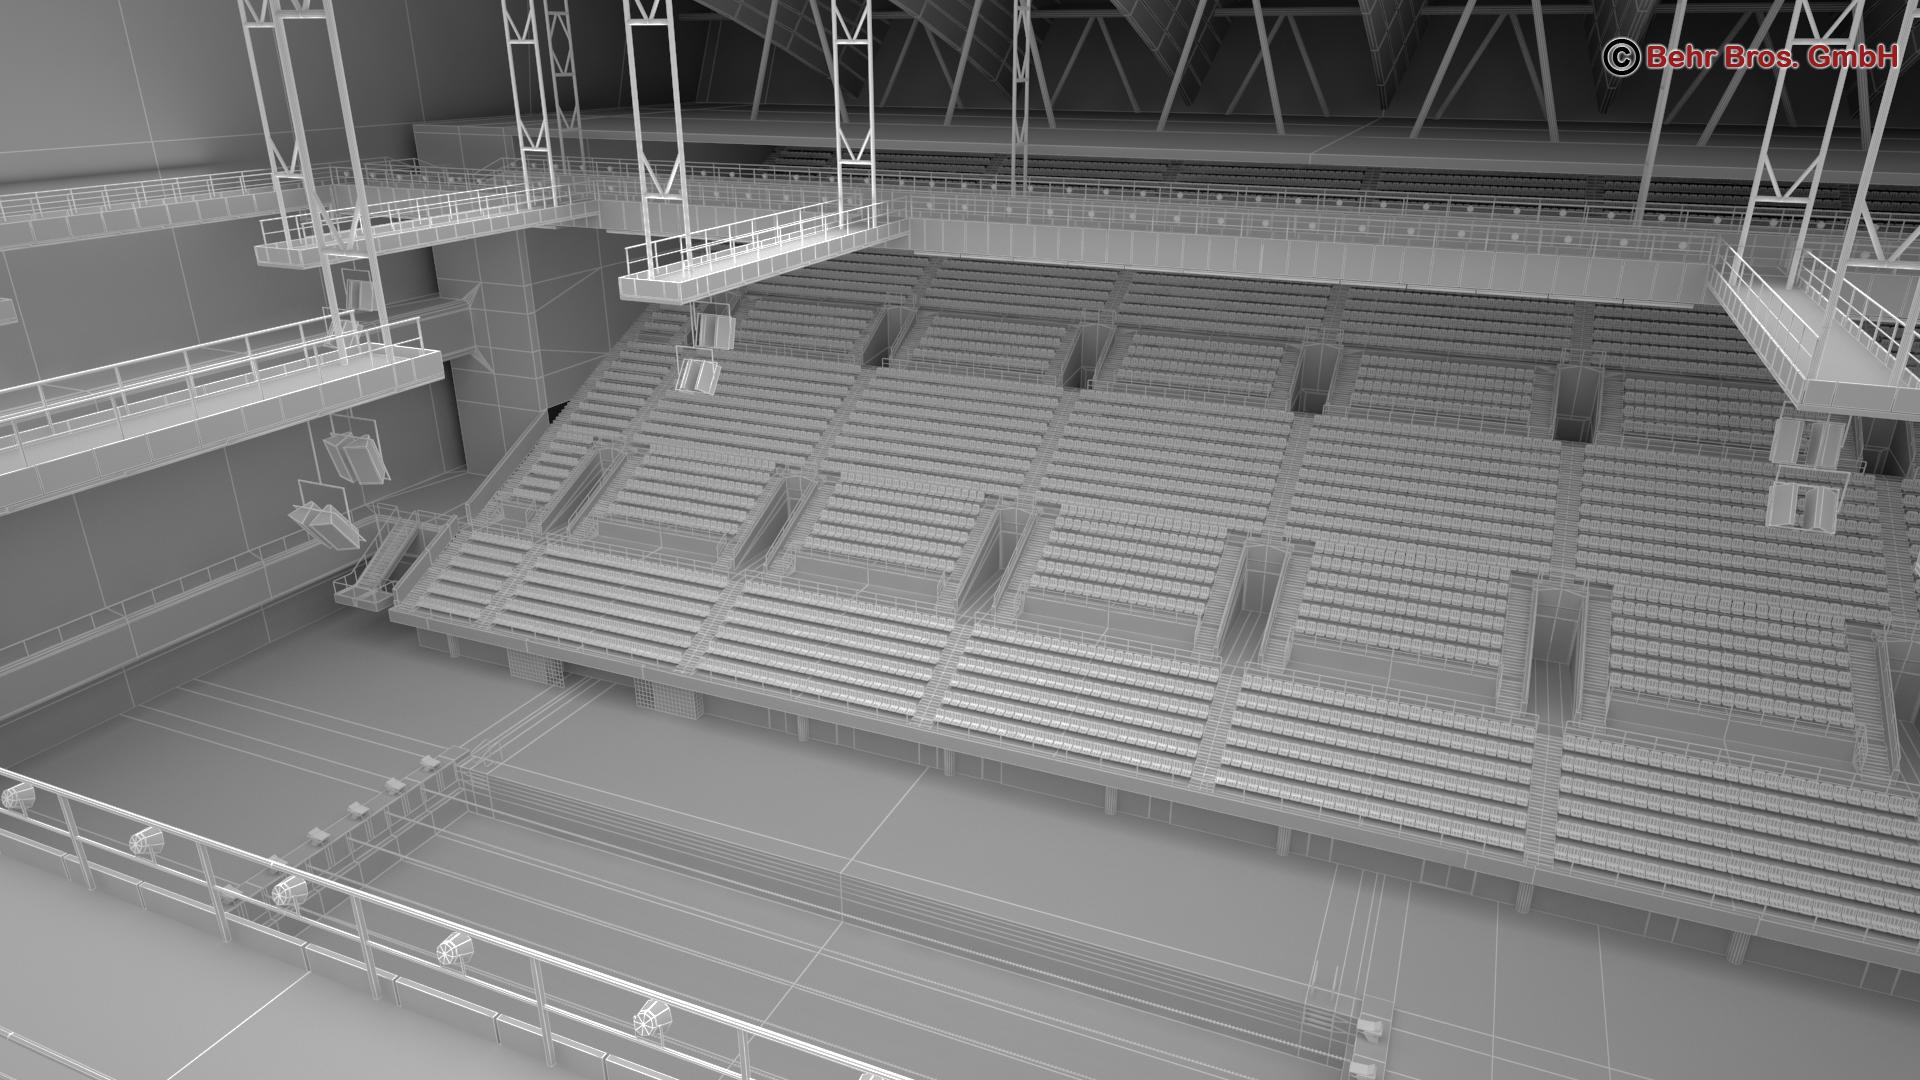 swim stadium 3d model 3ds max fbx c4d lwo ma mb obj 204448